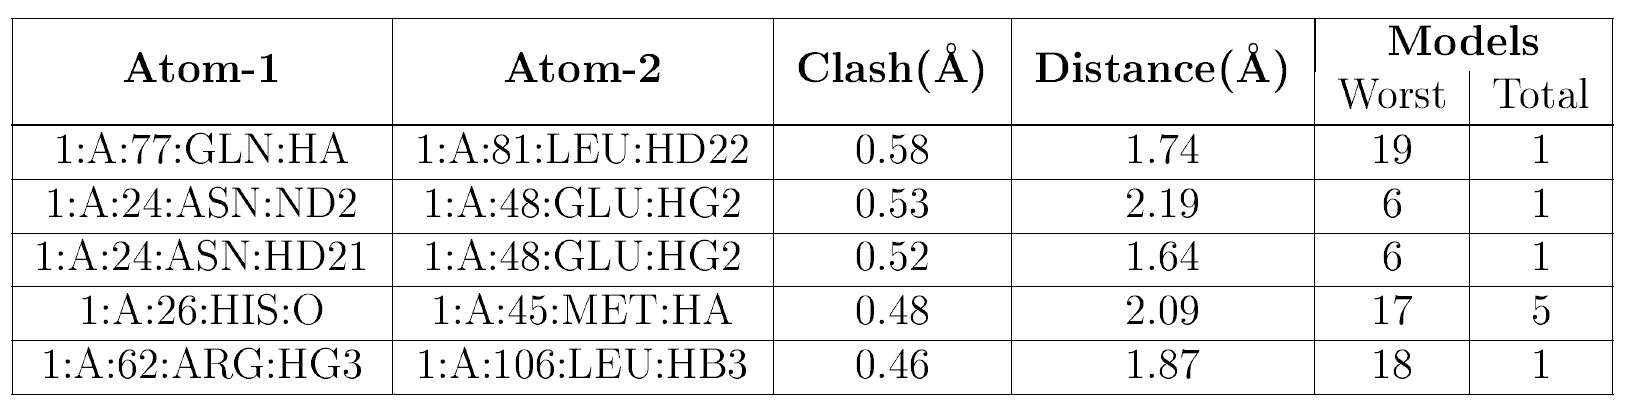 (image nmr table showing individual clashes)